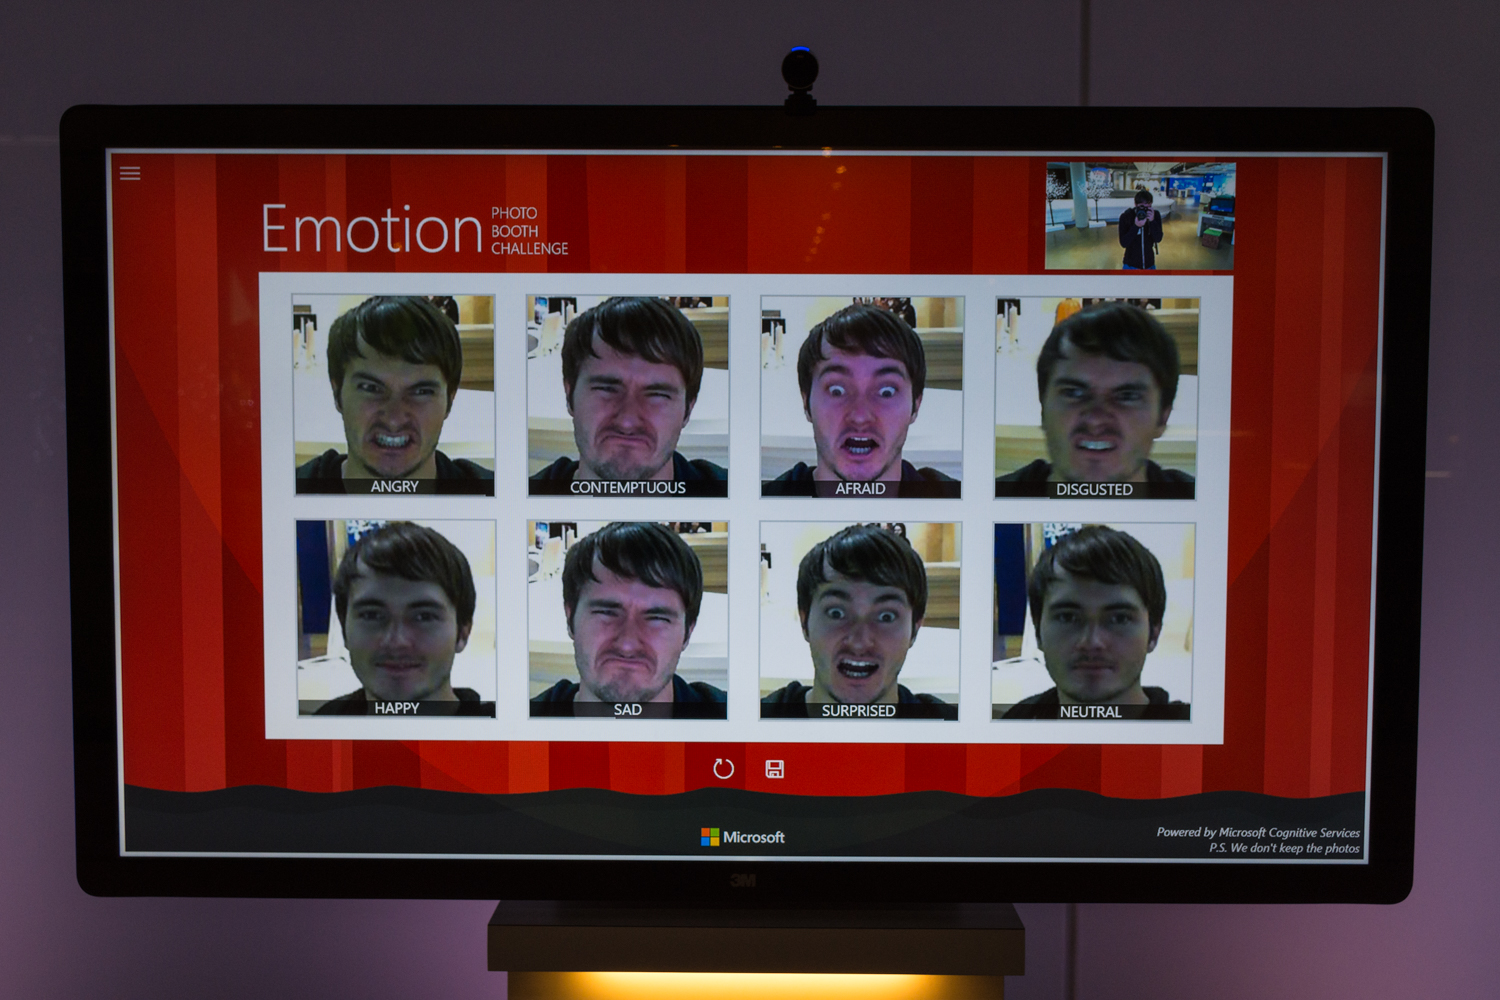 The 8 faces of Mike